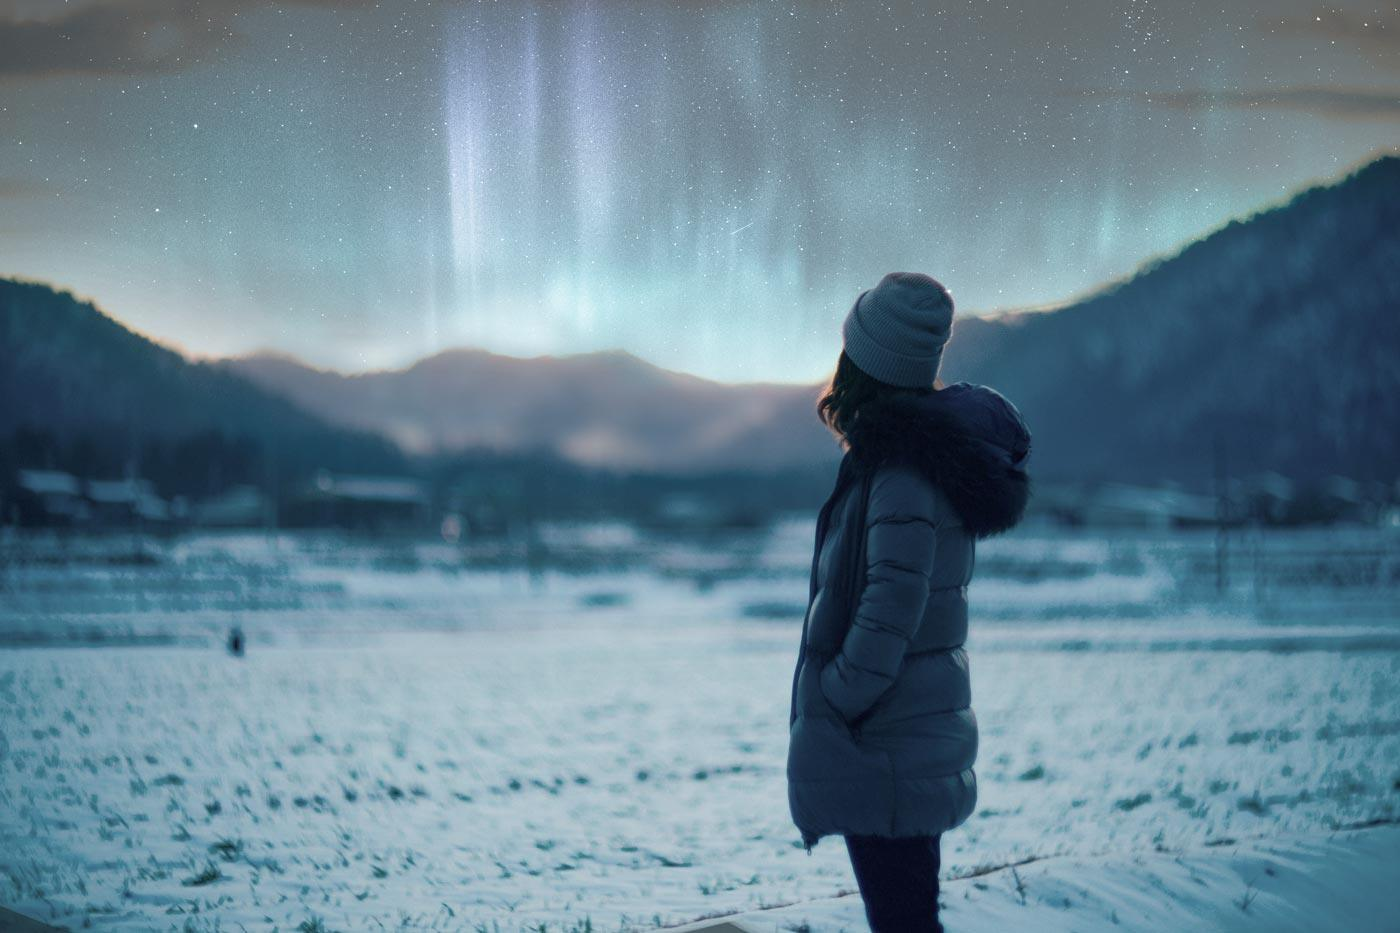 The 7 best place to see northern lights around the world | Well+Good